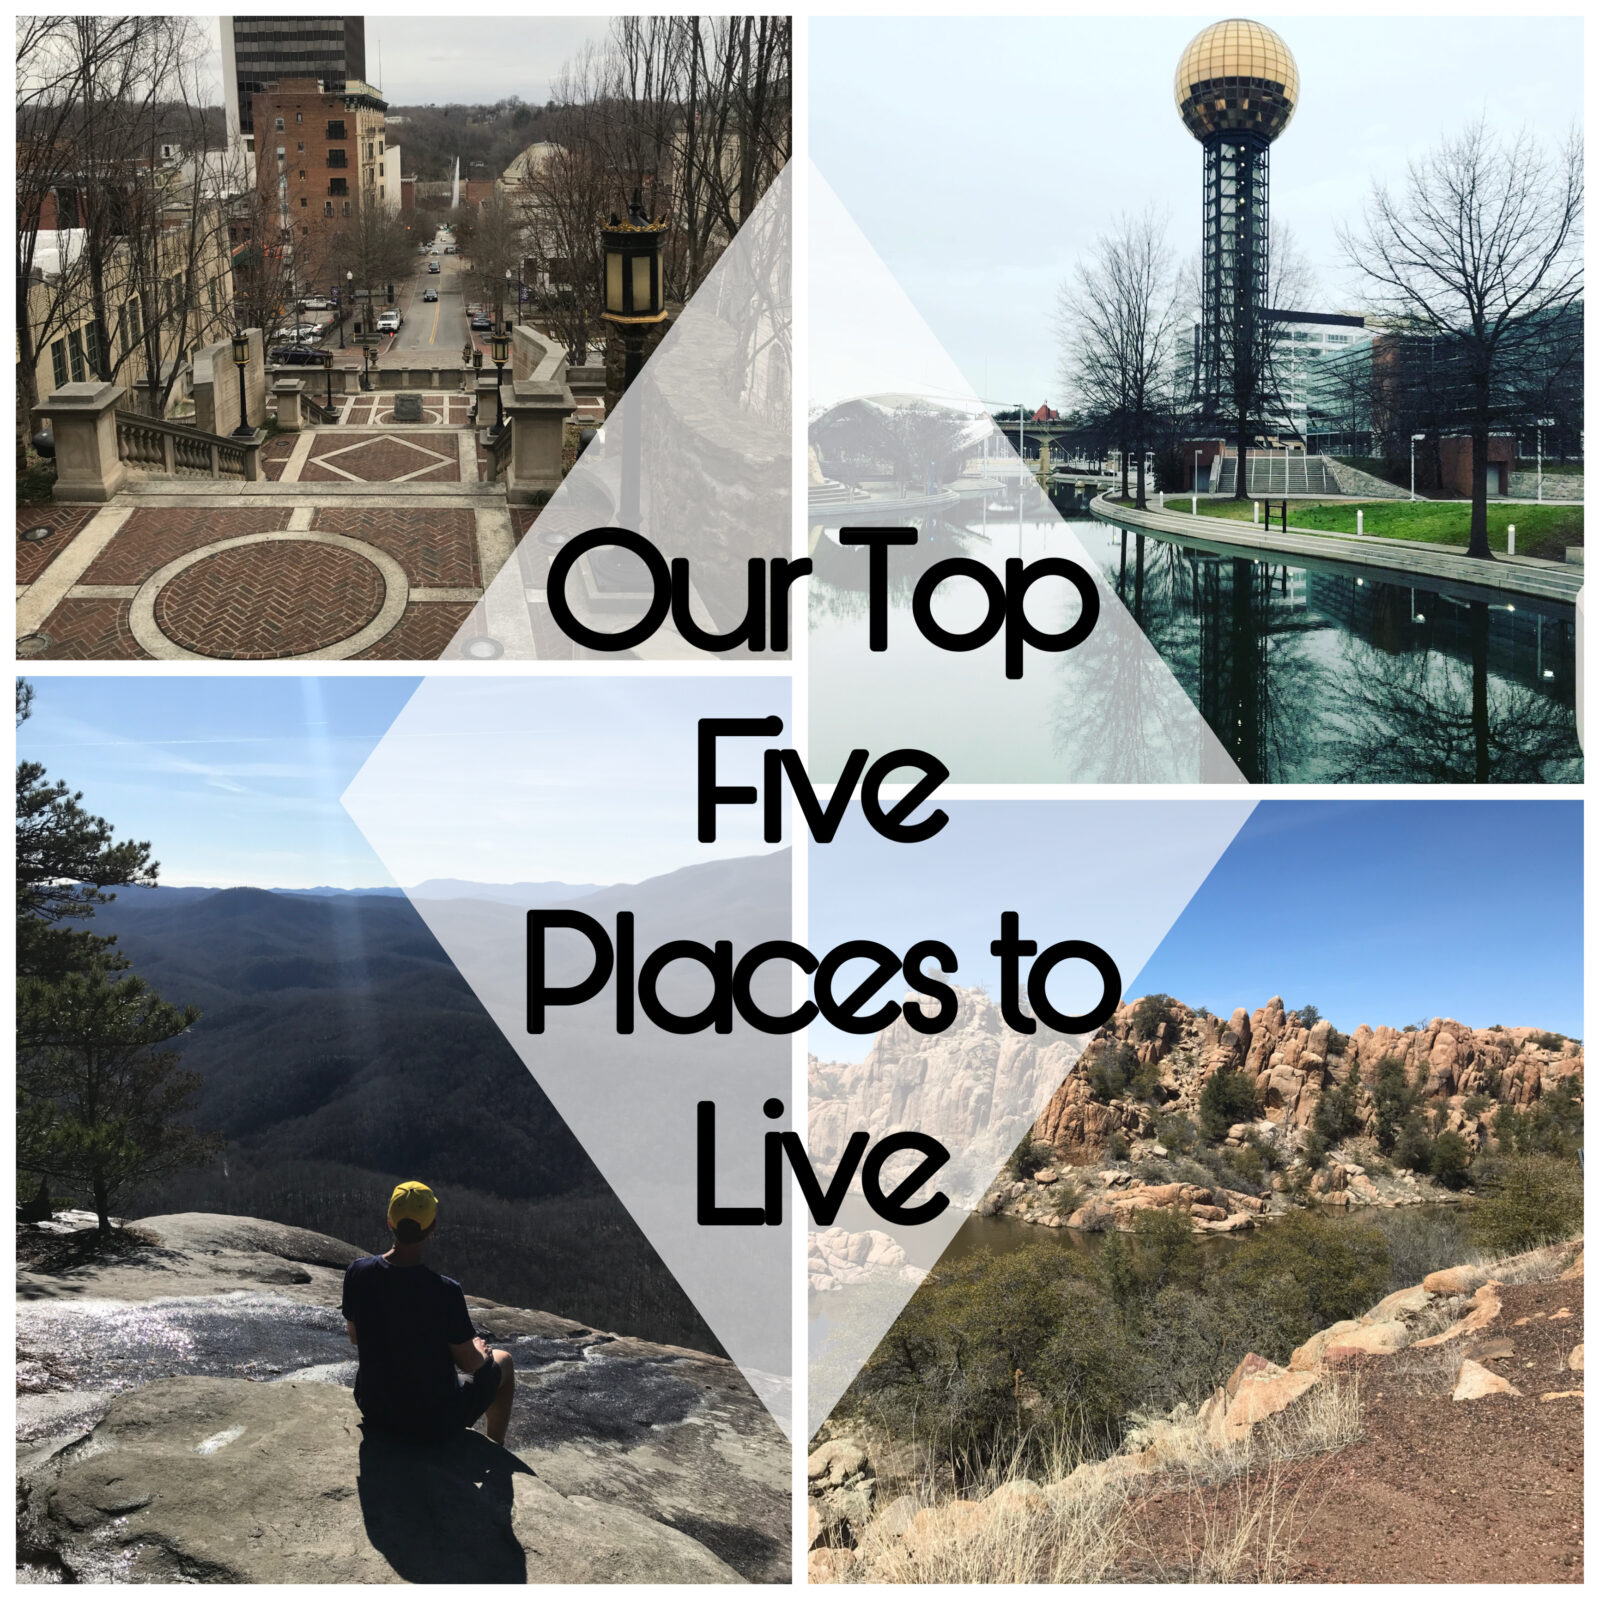 Our Top 5 places to live